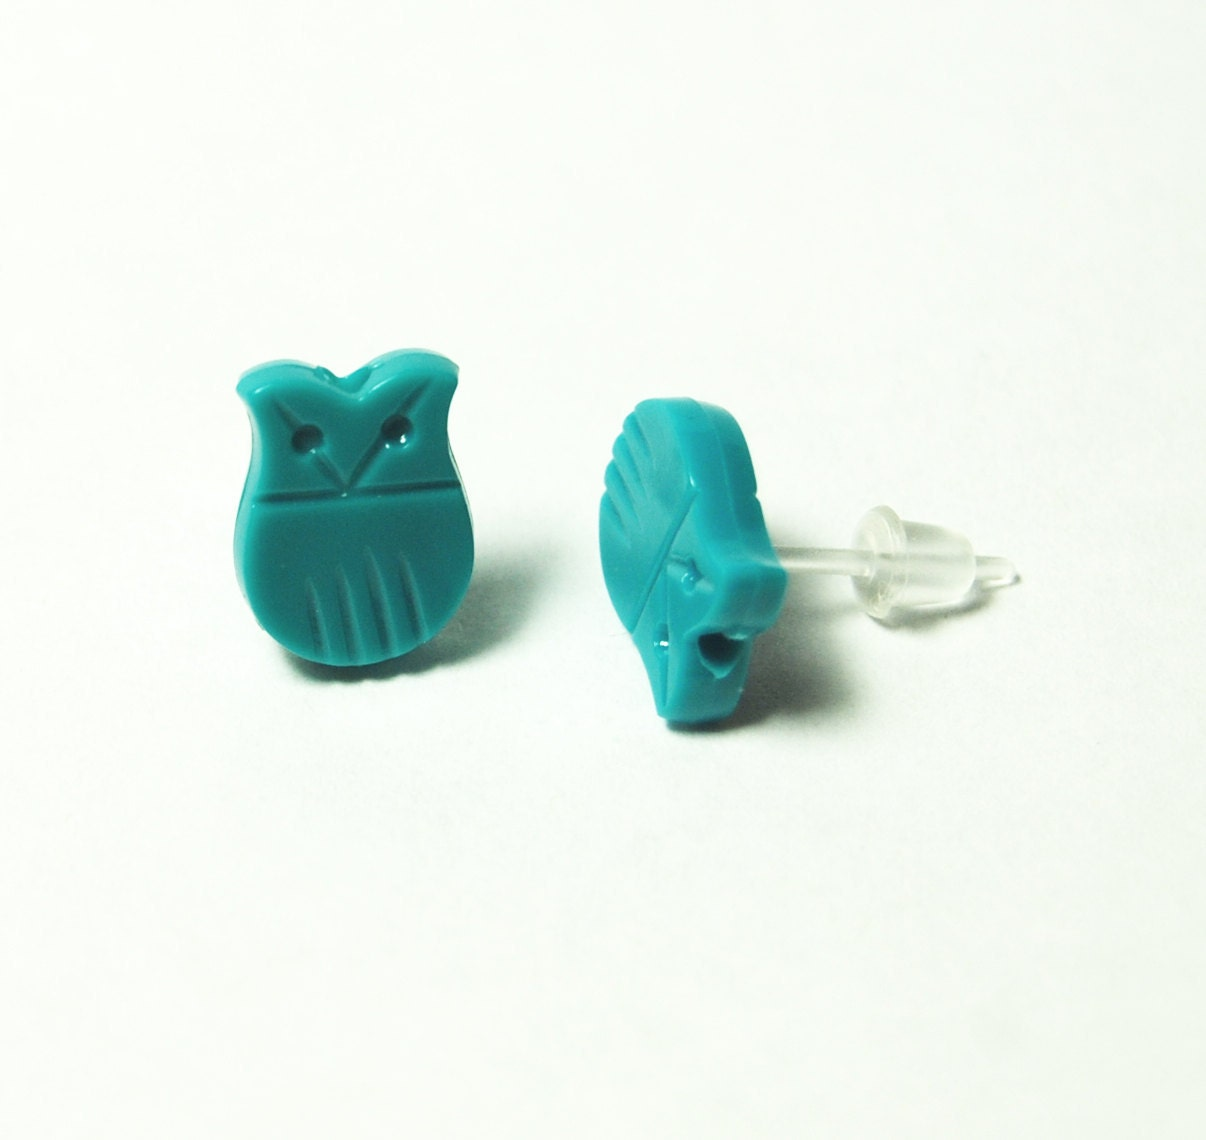 vintage turquoise owl bead earrings with plastic post for